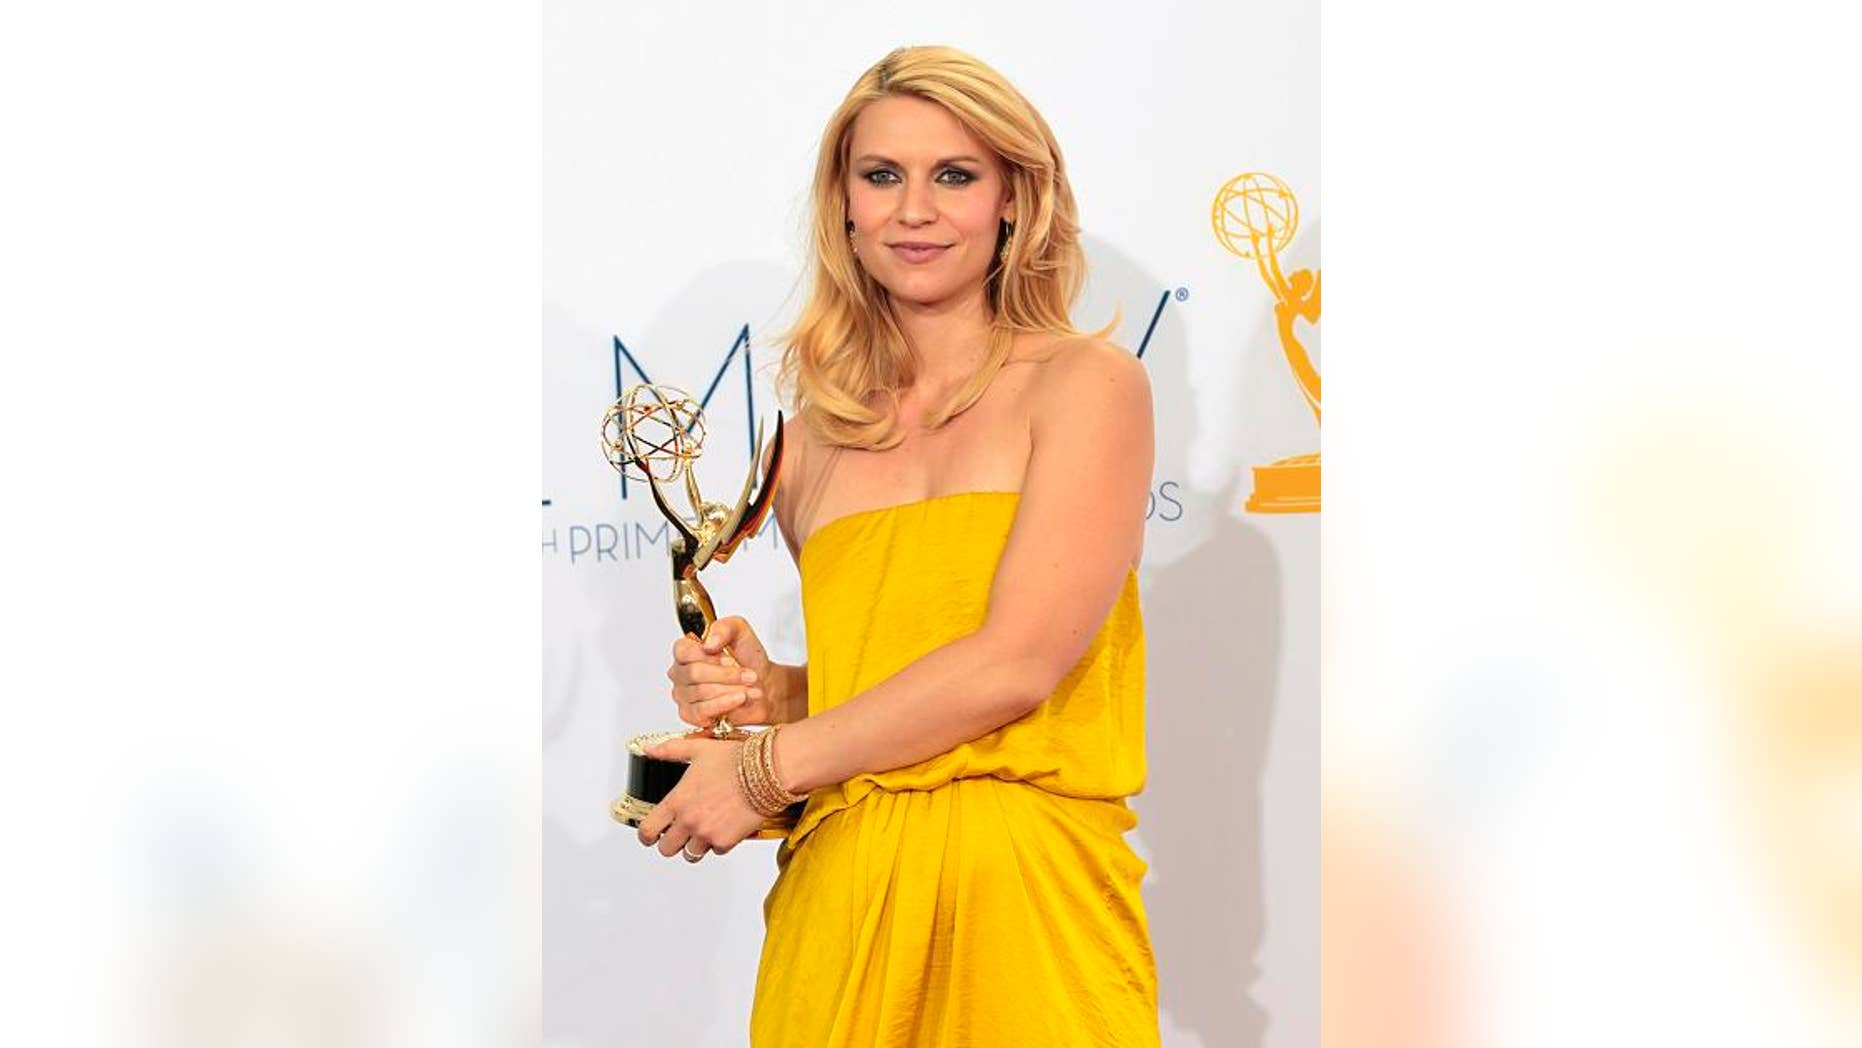 """Claire Danes holds the Emmy award for outstanding lead actress in a drama series for her role in """"Homeland"""" at the 64th Primetime Emmy Awards in Los Angeles September 23, 2012.  REUTERS/Mario Anzuoni (UNITED STATES  Tags: ENTERTAINMENT) (EMMYS-BACKSTAGE)"""